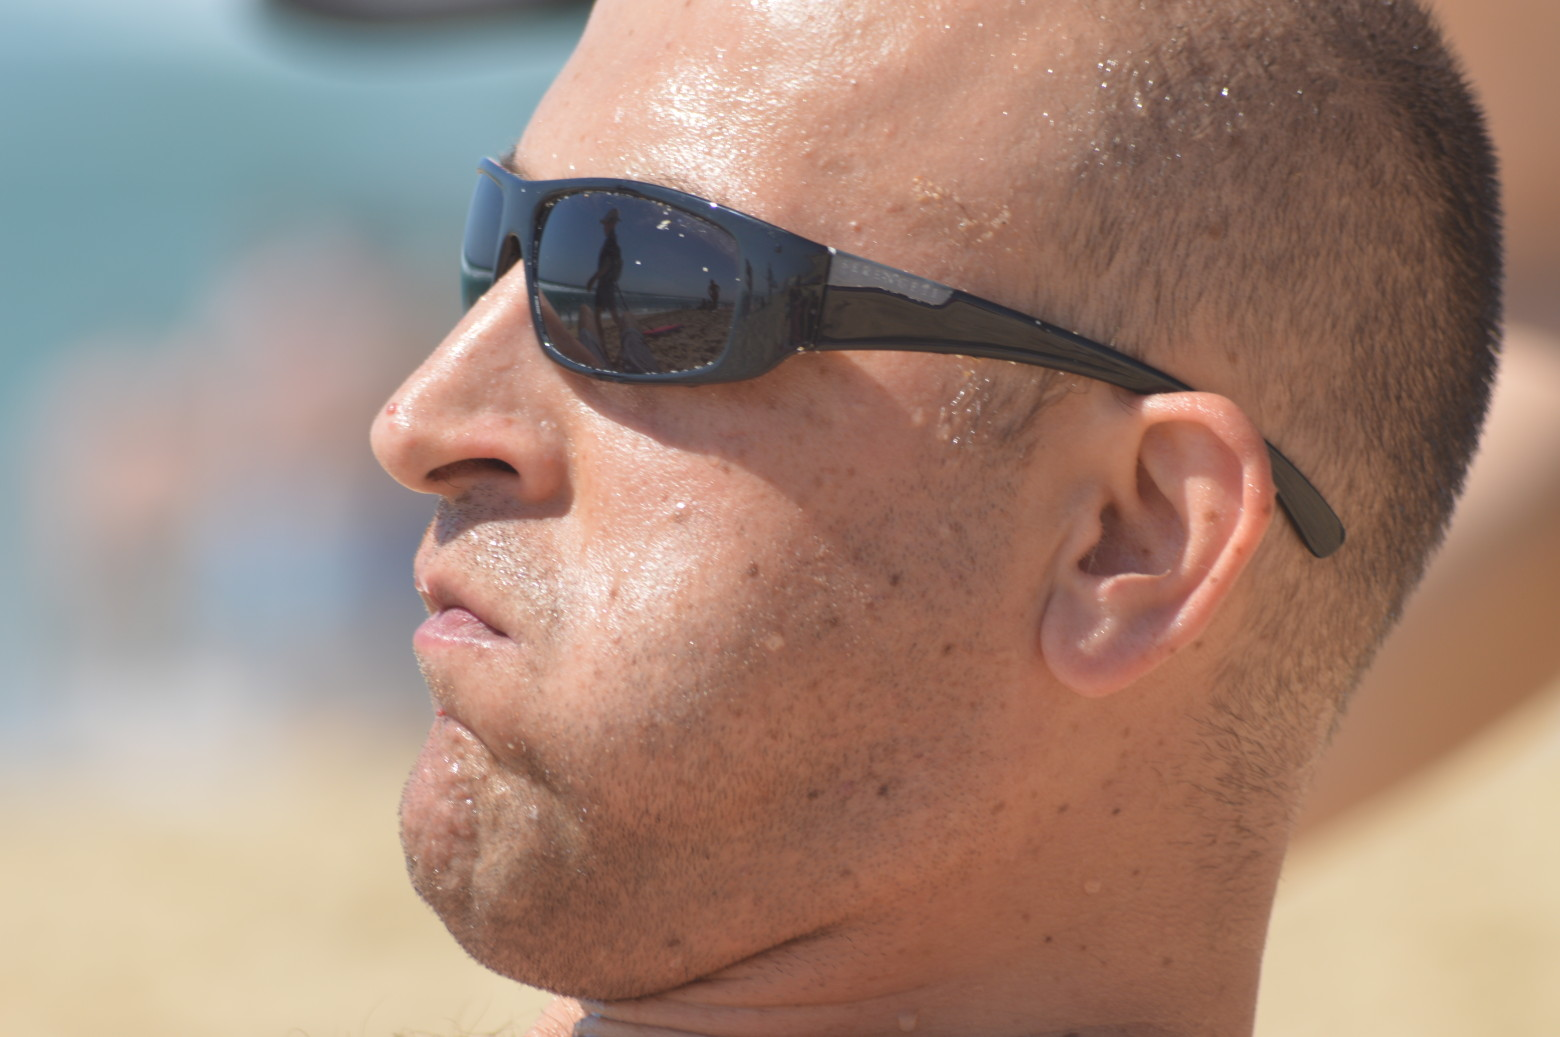 comment transpirer du visage. Black Bedroom Furniture Sets. Home Design Ideas